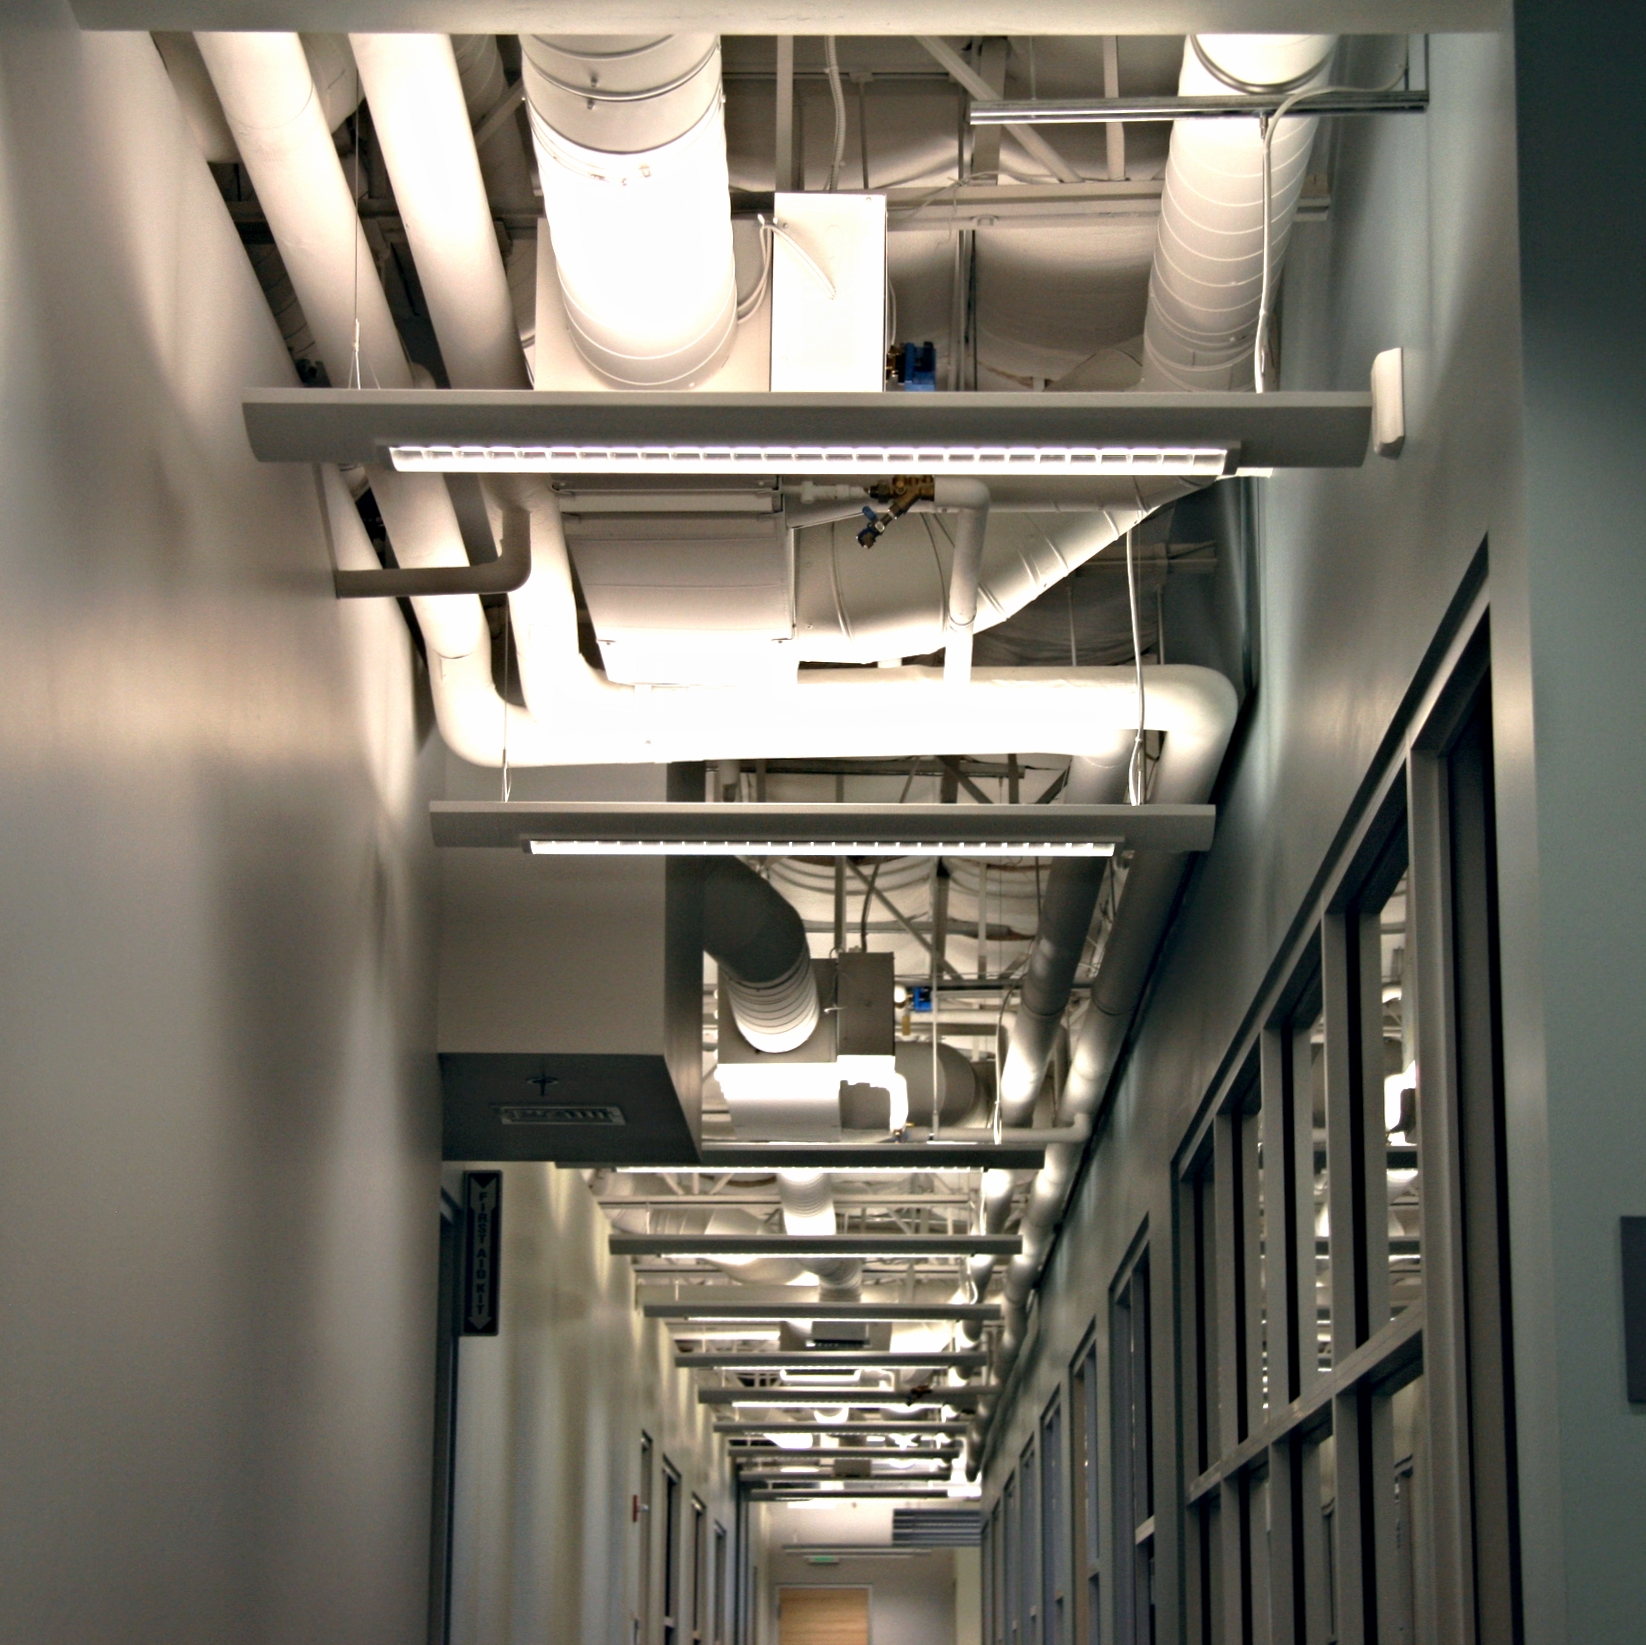 Domestic HVAC system for Specialty Silicone